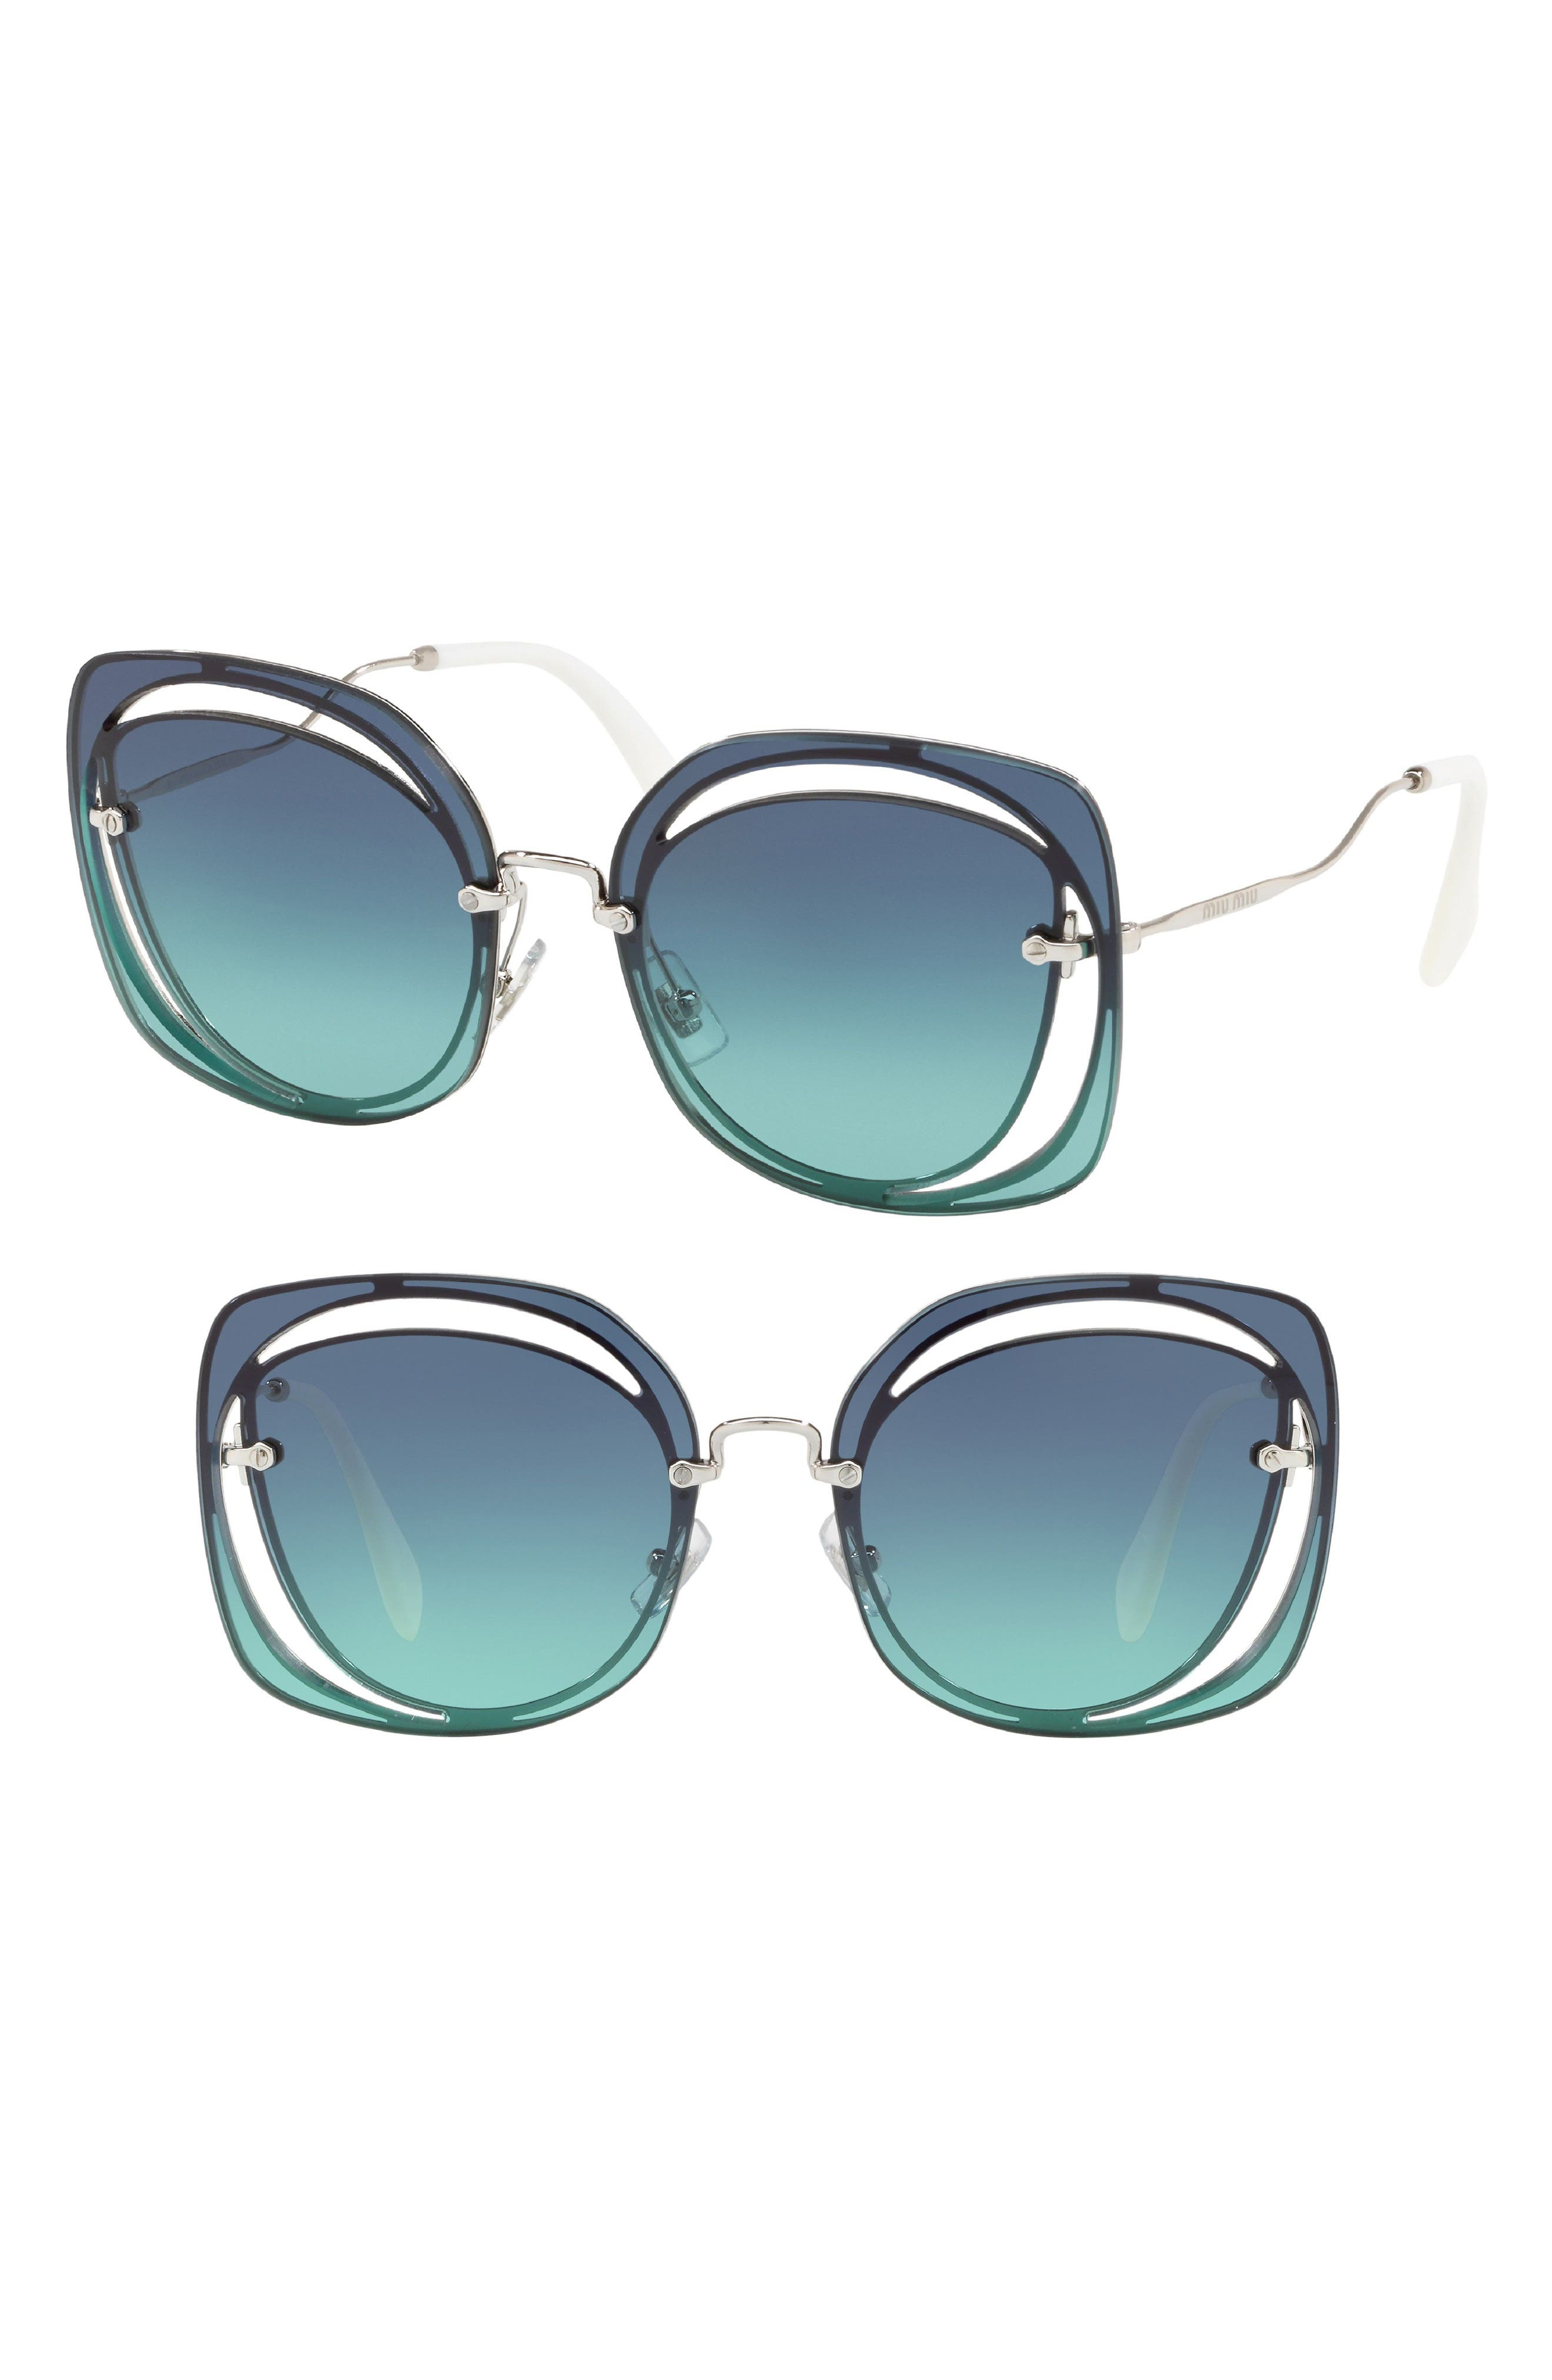 64mm Oversize Sunglasses,                         Main,                         color, 400